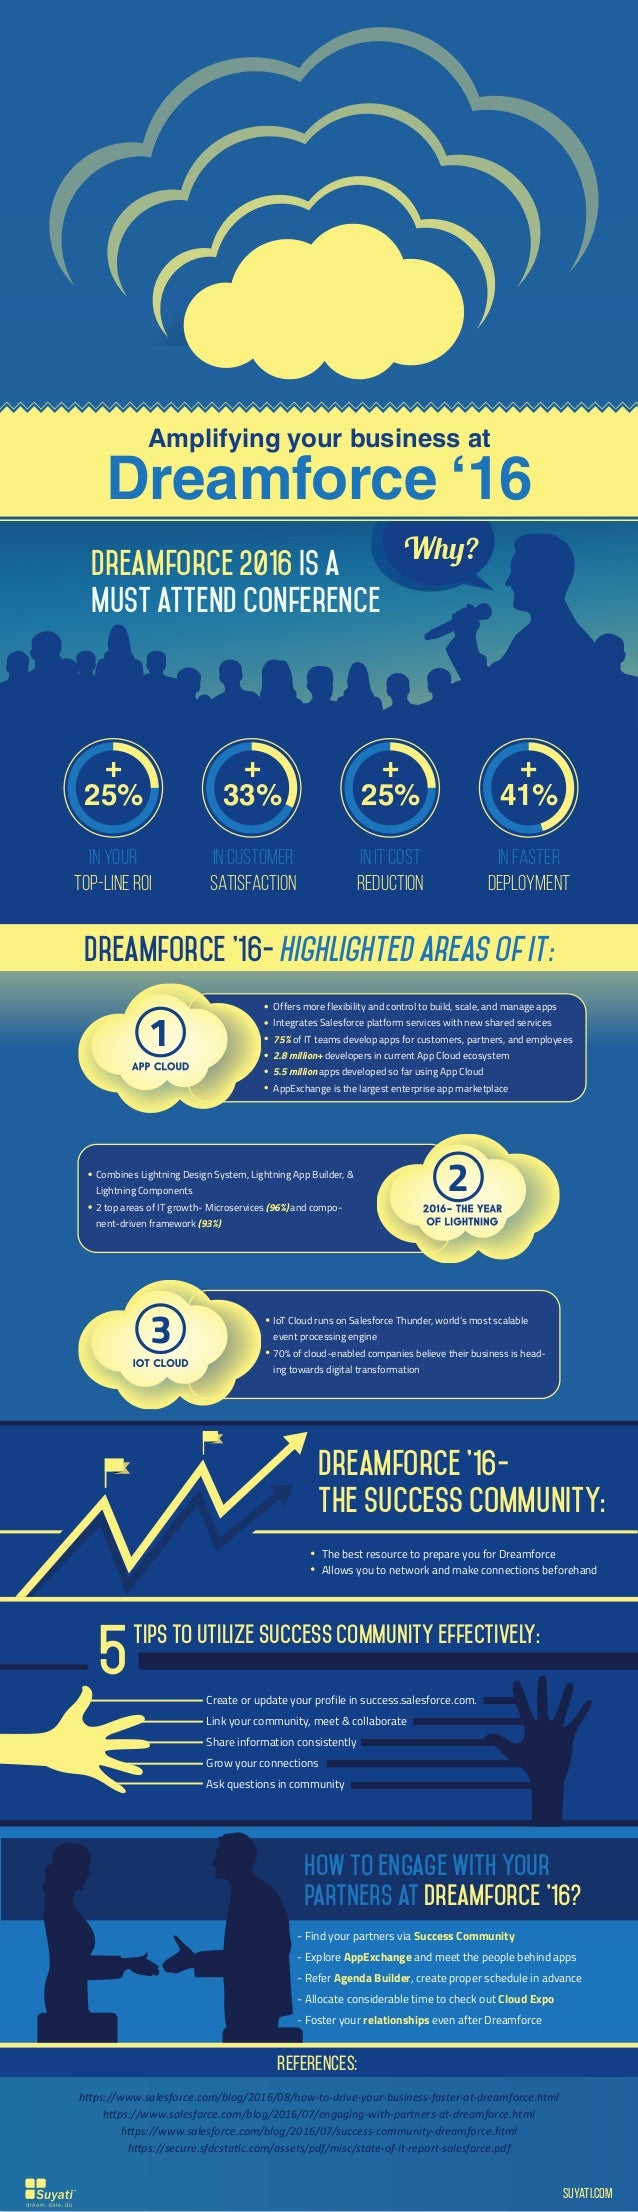 Amplifying your business at Dreamforce '16 Dreamforce 2016 is a must attend conference Why? 25% + 25% + in your top-line R...